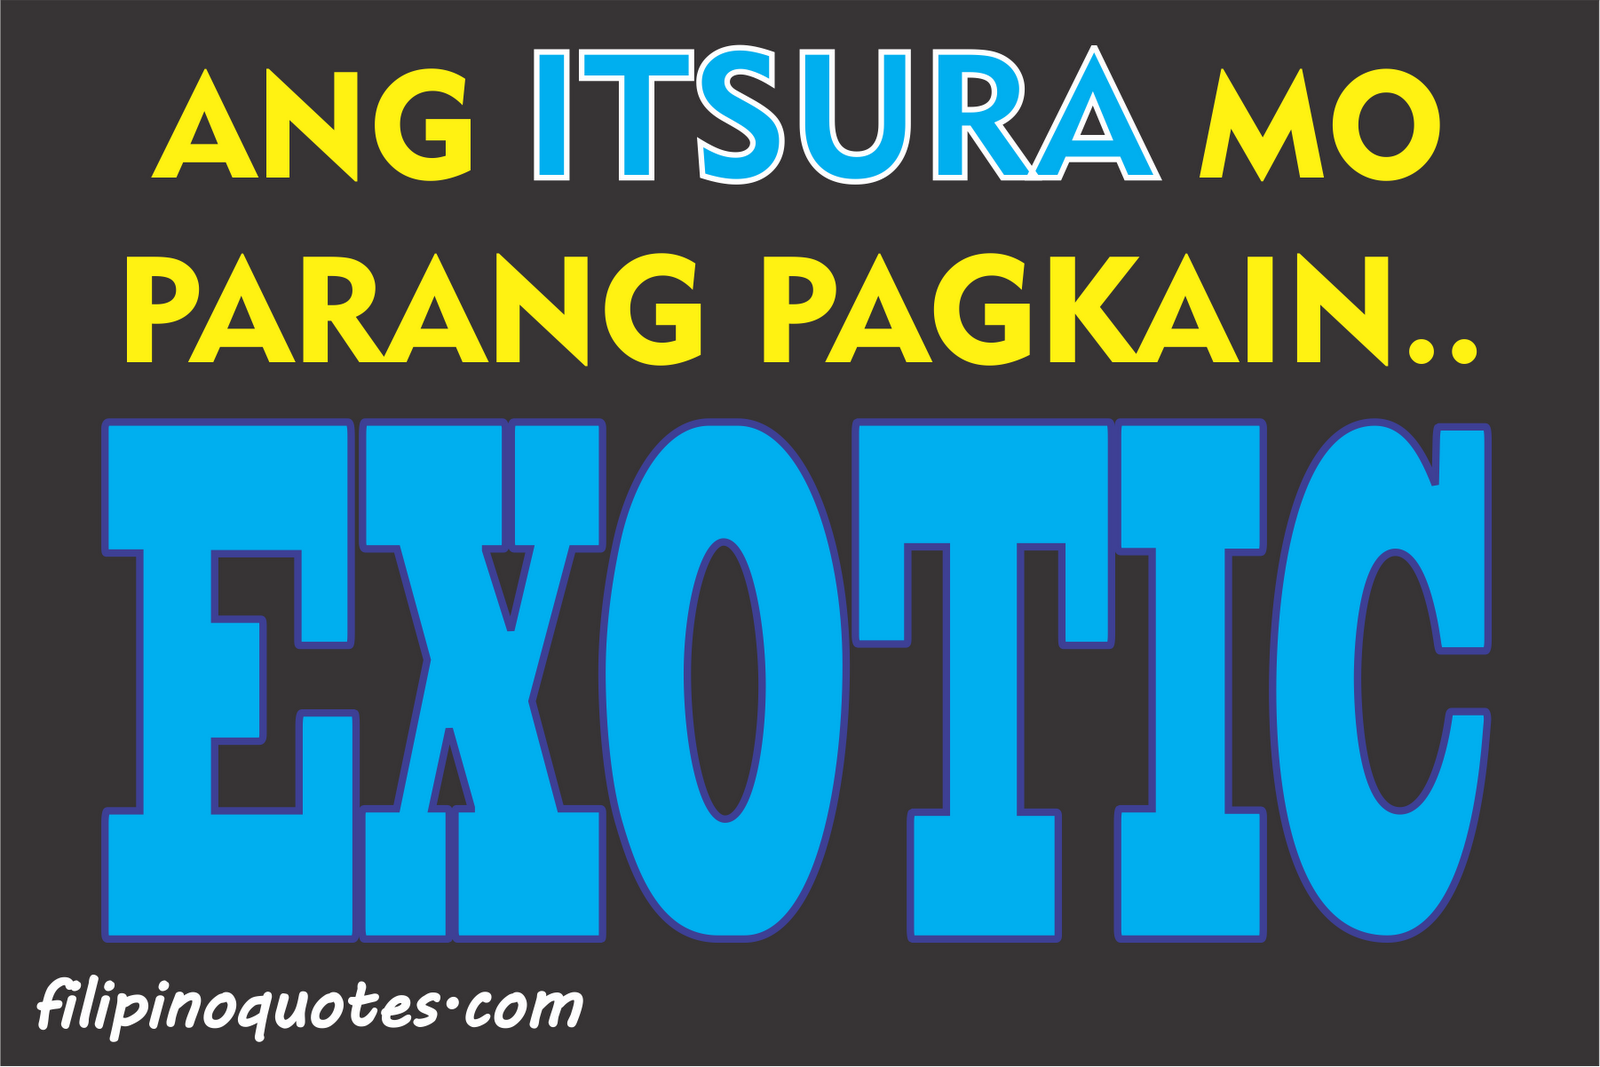 BITTER QUOTES TAGALOG QUOTES